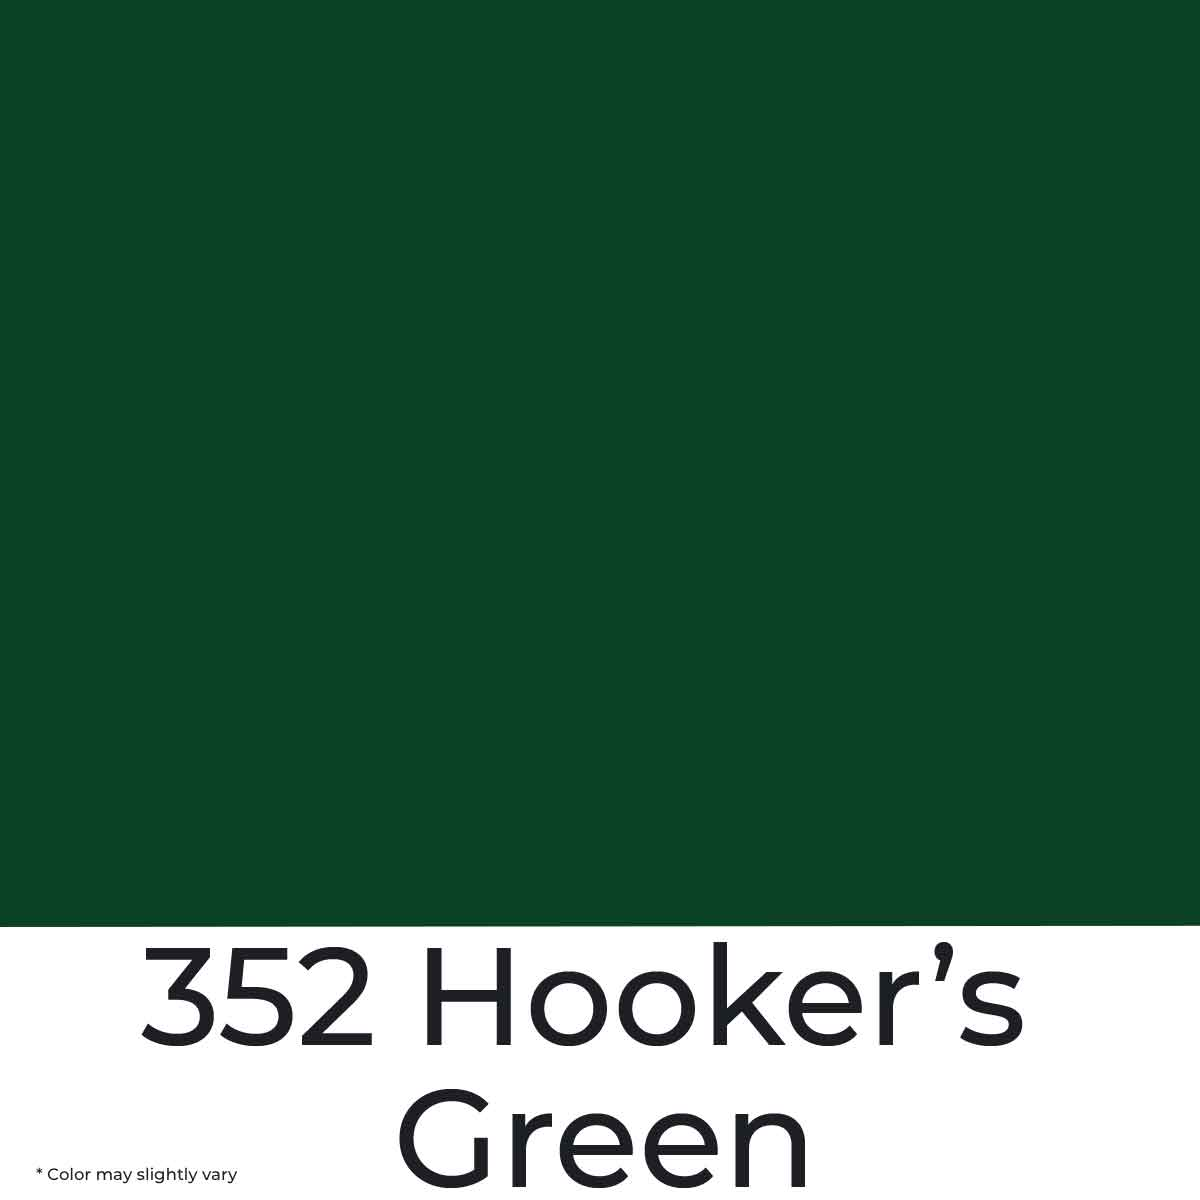 Daler Rowney Acrylic Paint - Hookers green 352 from najmaonline.com